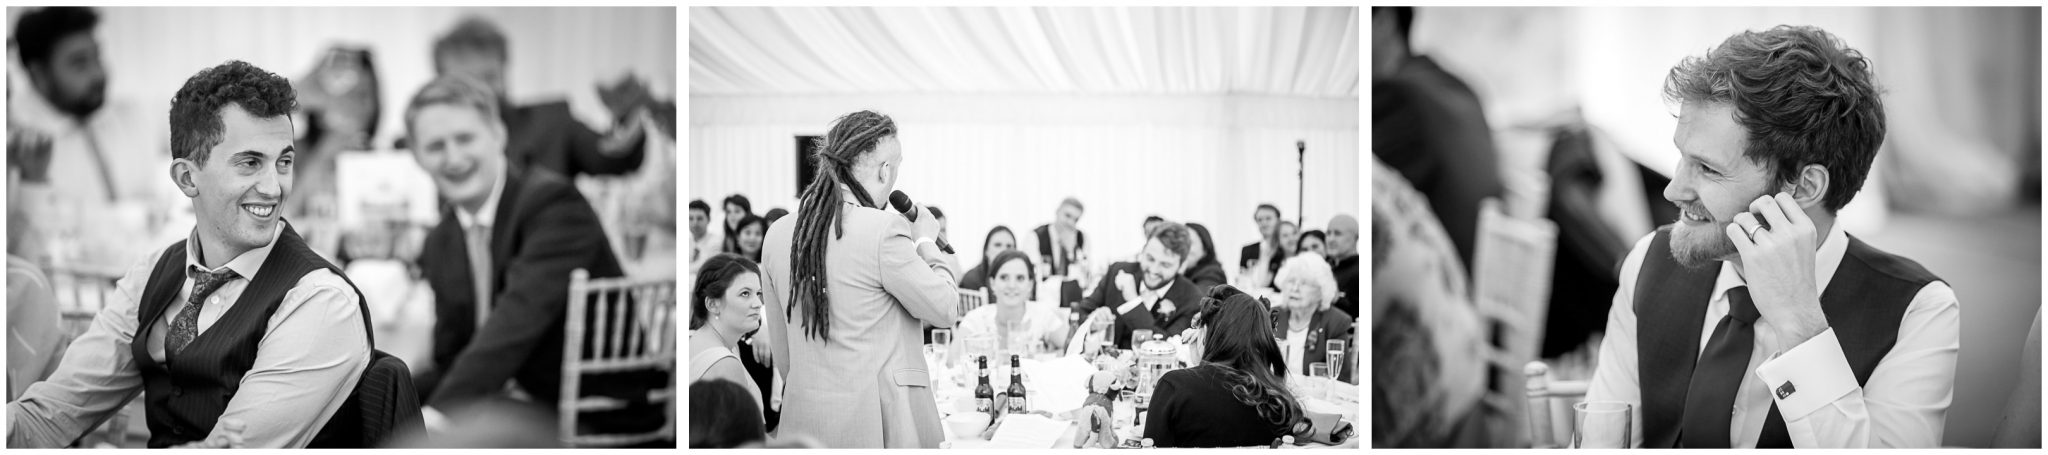 The best man makes his speech in front of assembled guests